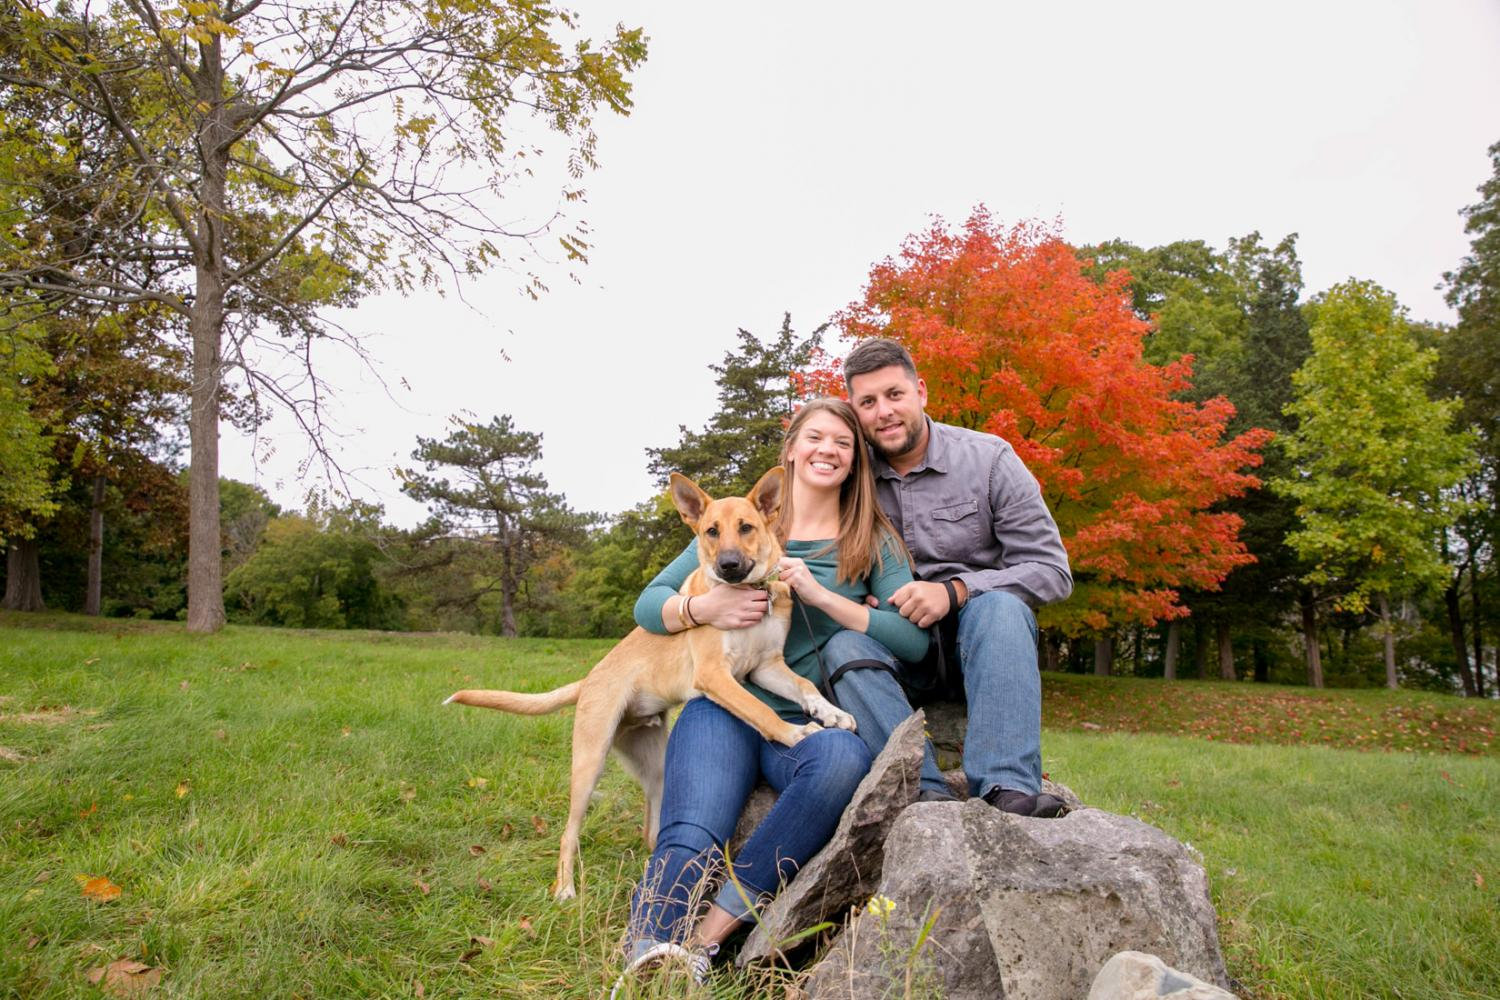 Pardo_Photo_Dog_Family_Portrait_Worlds_End_Hingham_MA